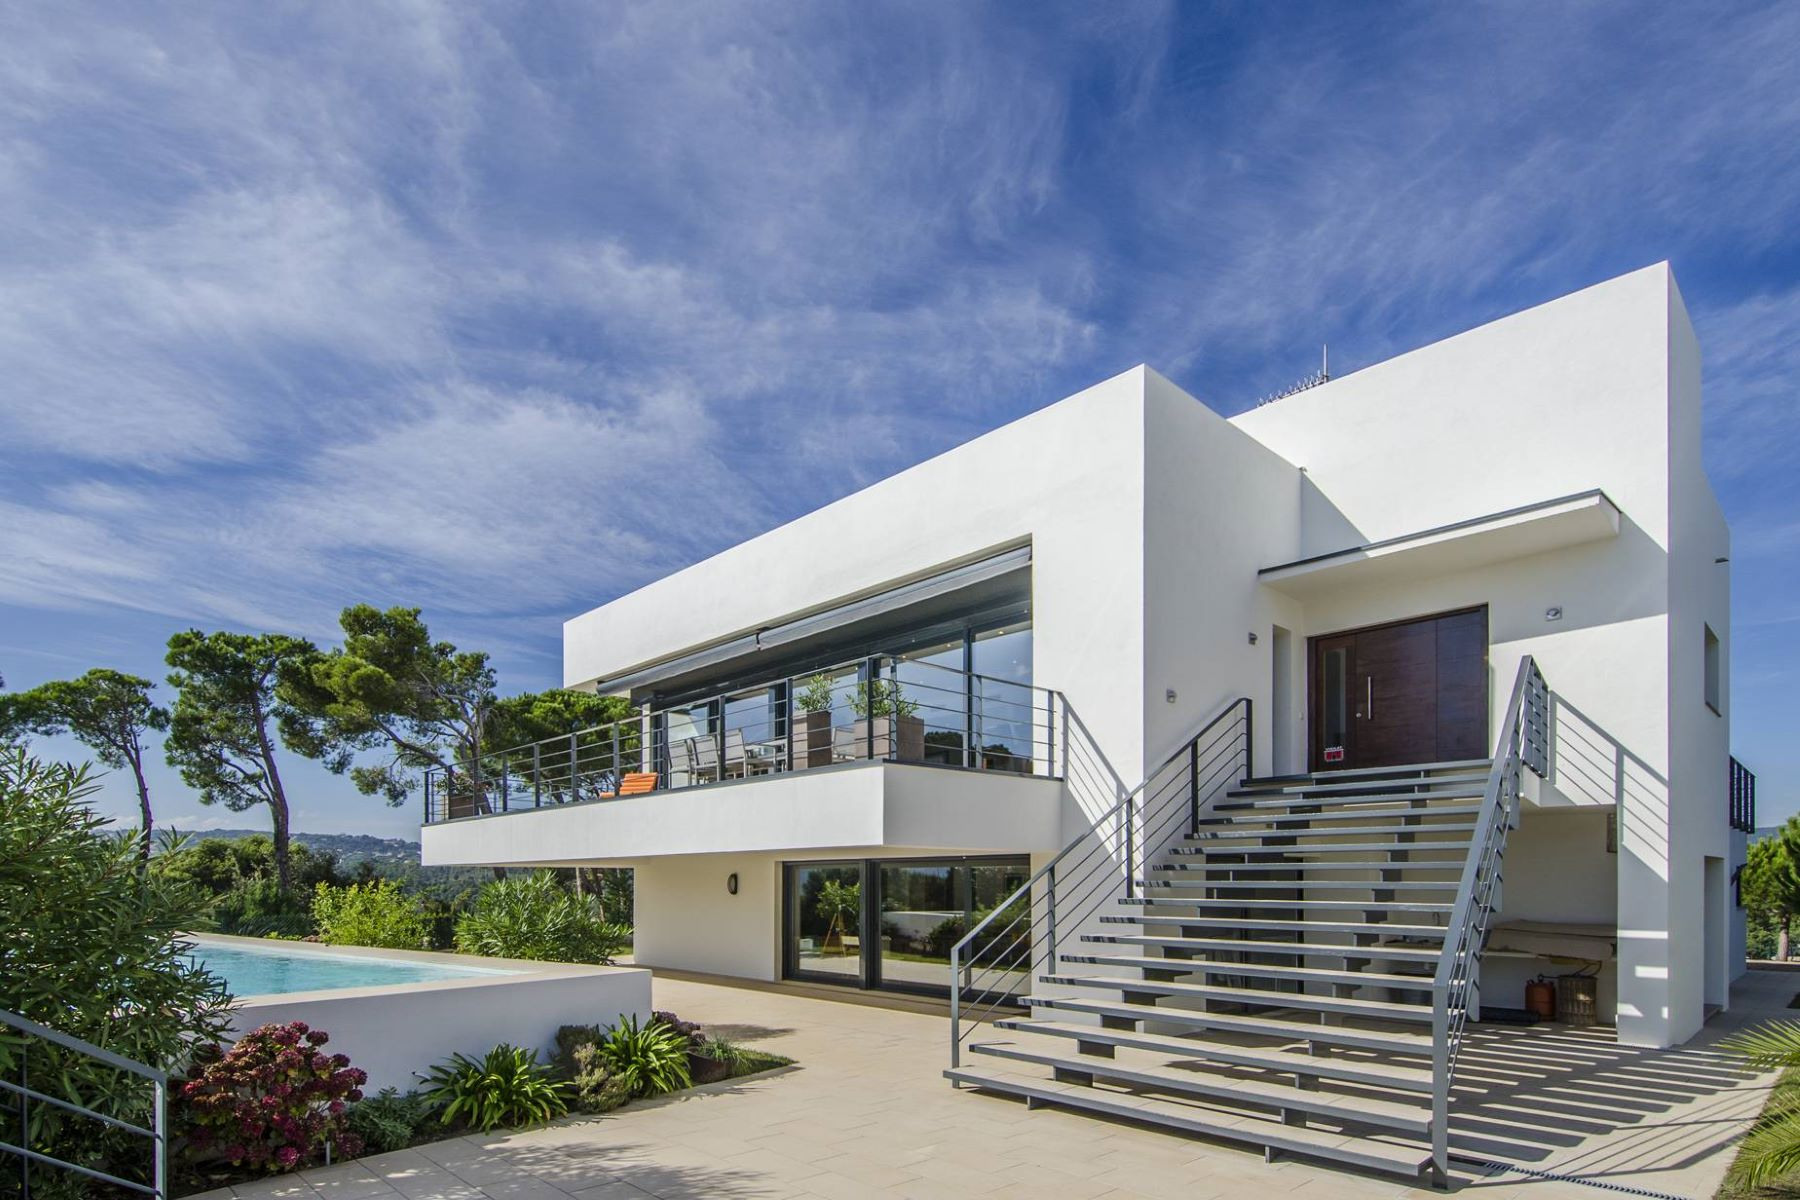 Single Family Home for Sale at Excellent newly built villa 700 m from the beach Torrevalentina, Barcelona, 17252 Spain